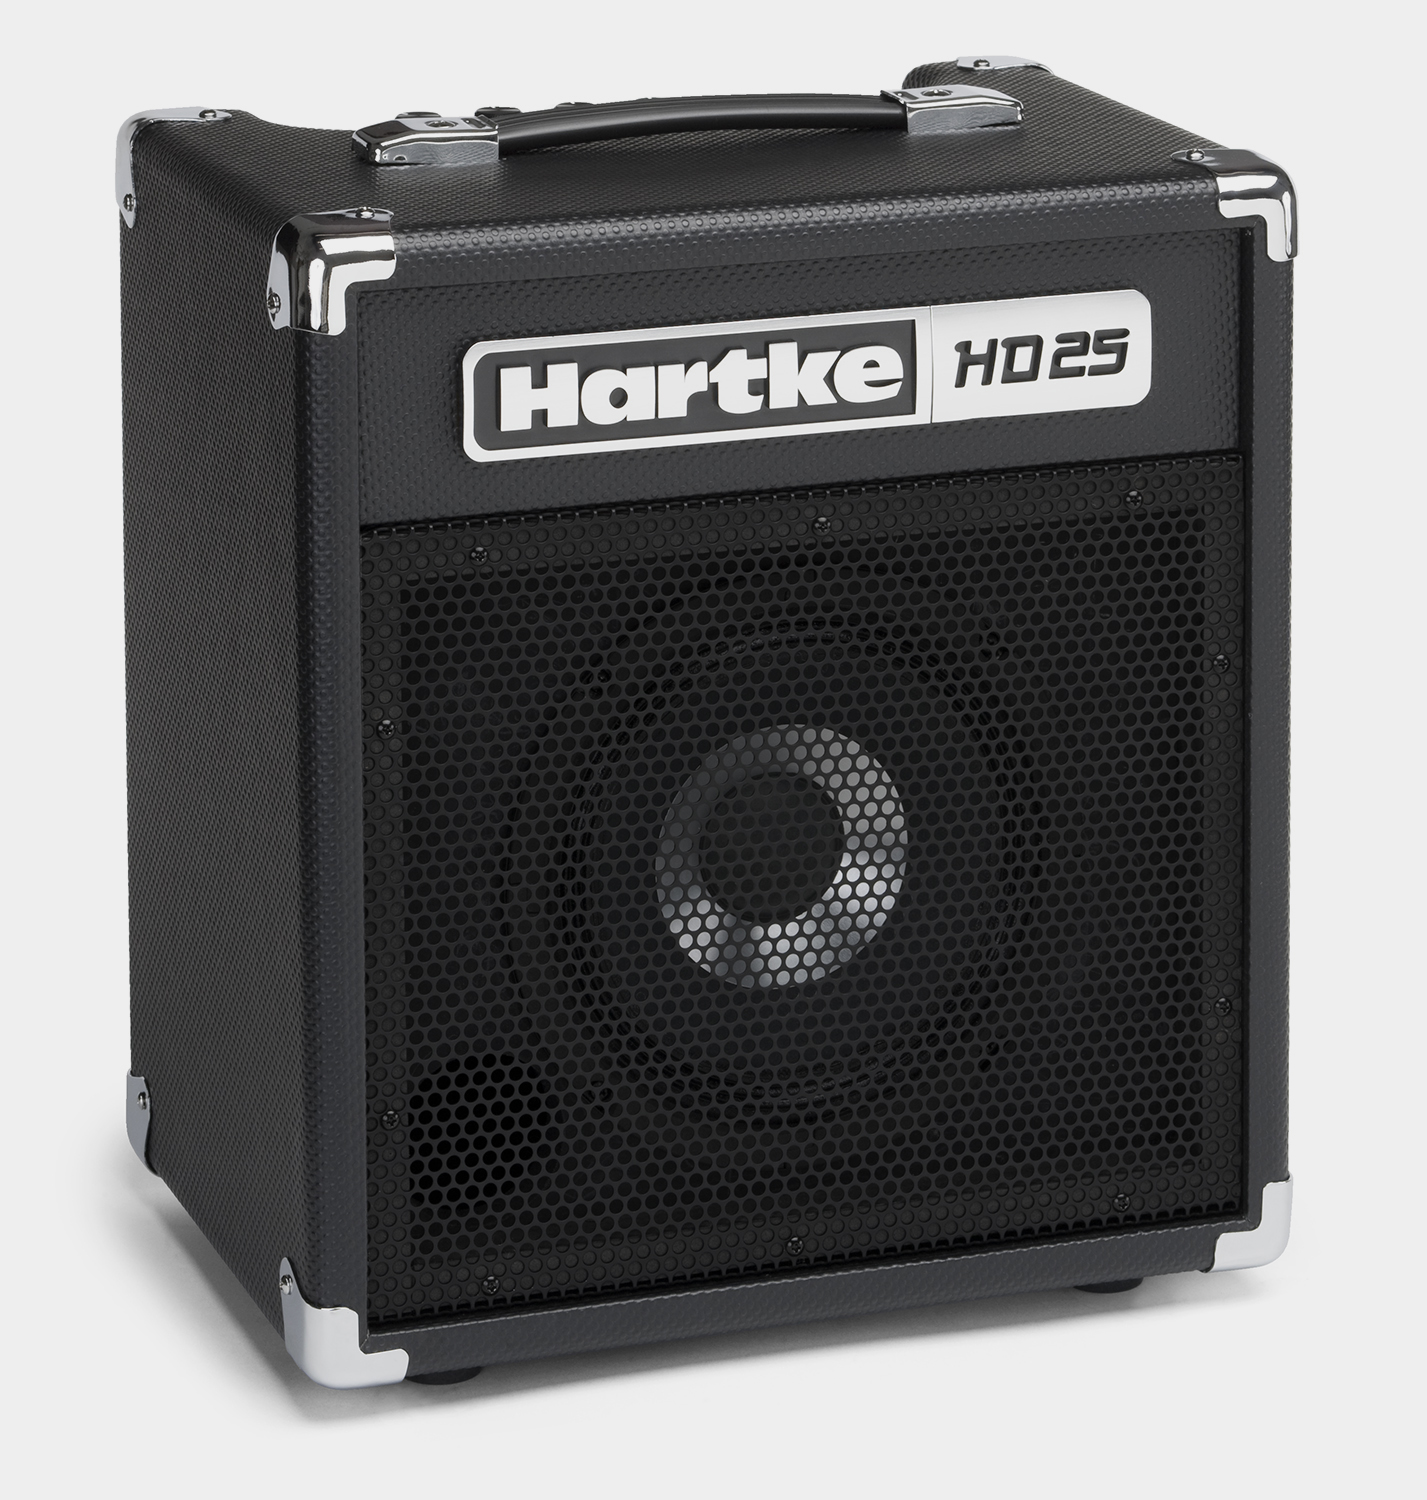 HARTKE HD 25 Combo Front